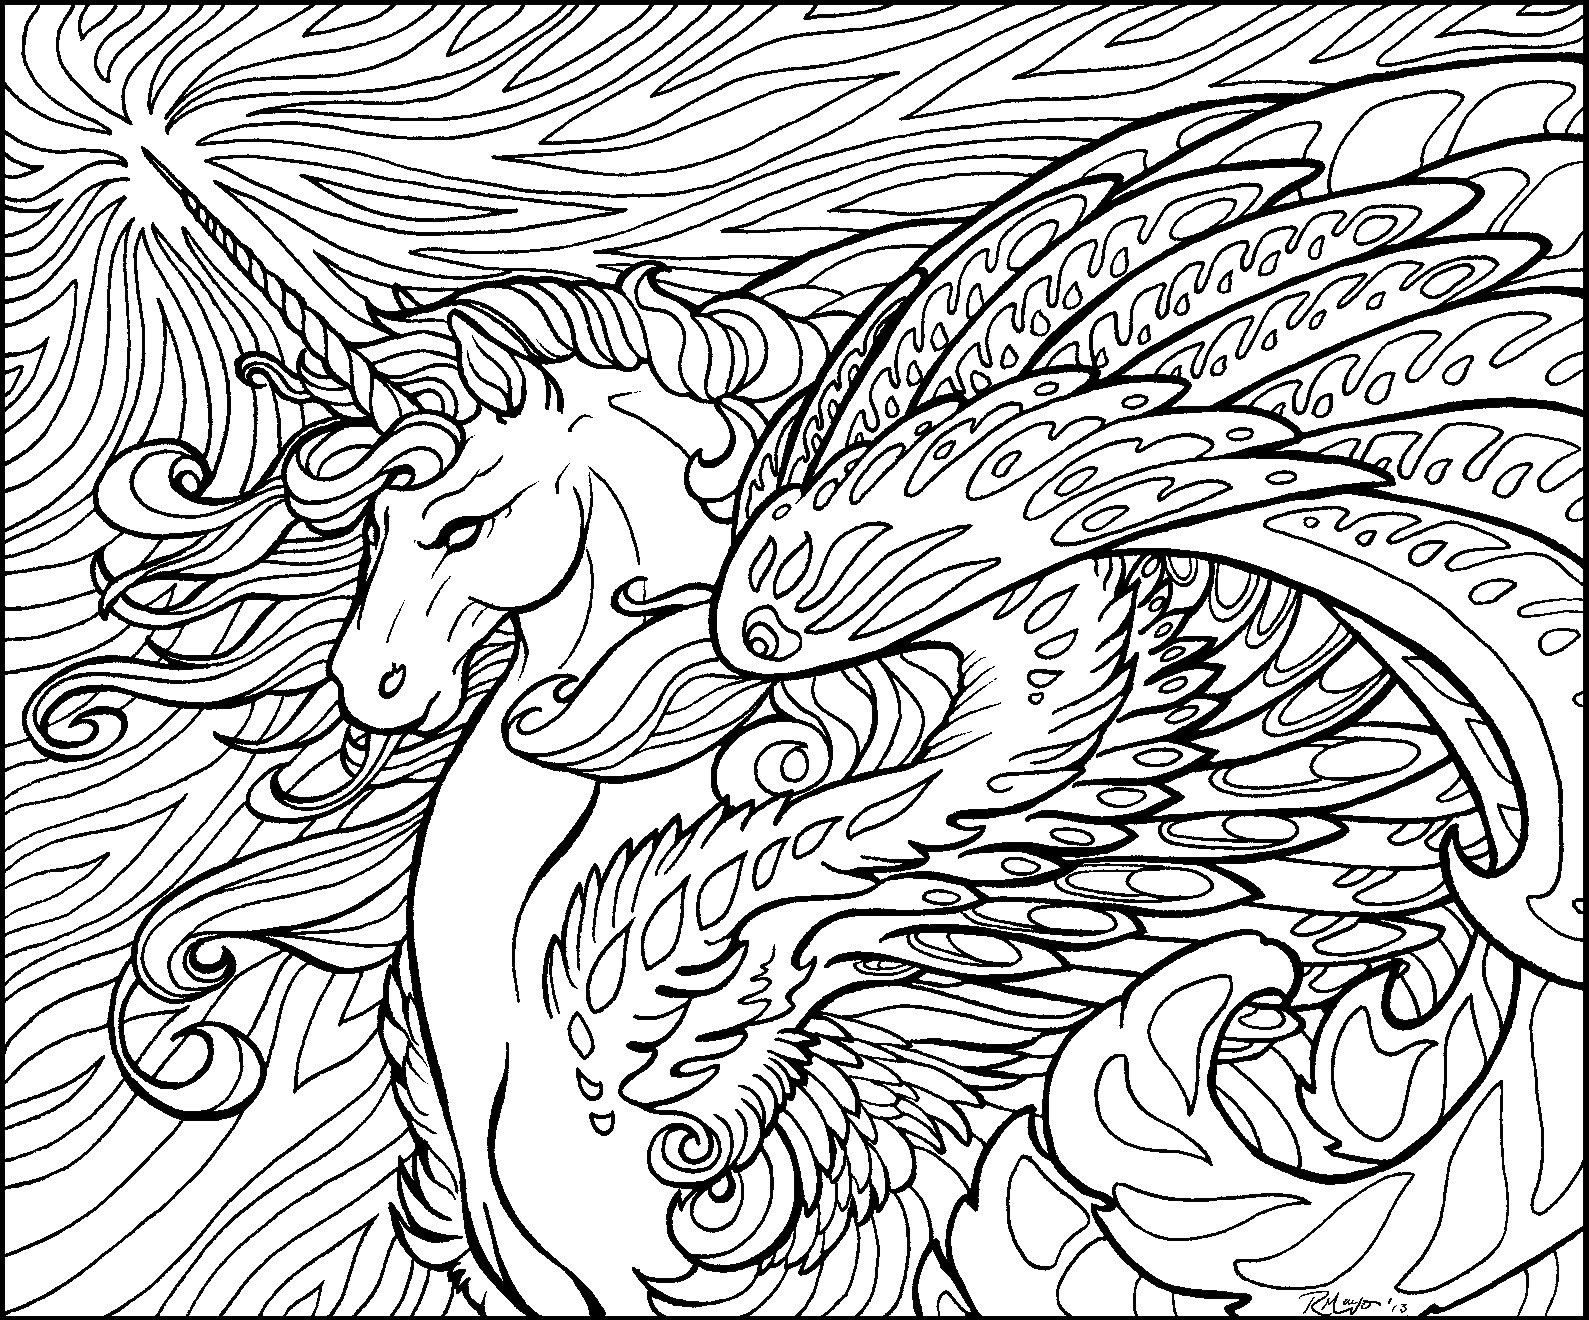 Difficult Dragon Coloring Pages Gallery For Kids 2018 Endear Free Horse Coloring Pages Dragon Coloring Page Animal Coloring Pages